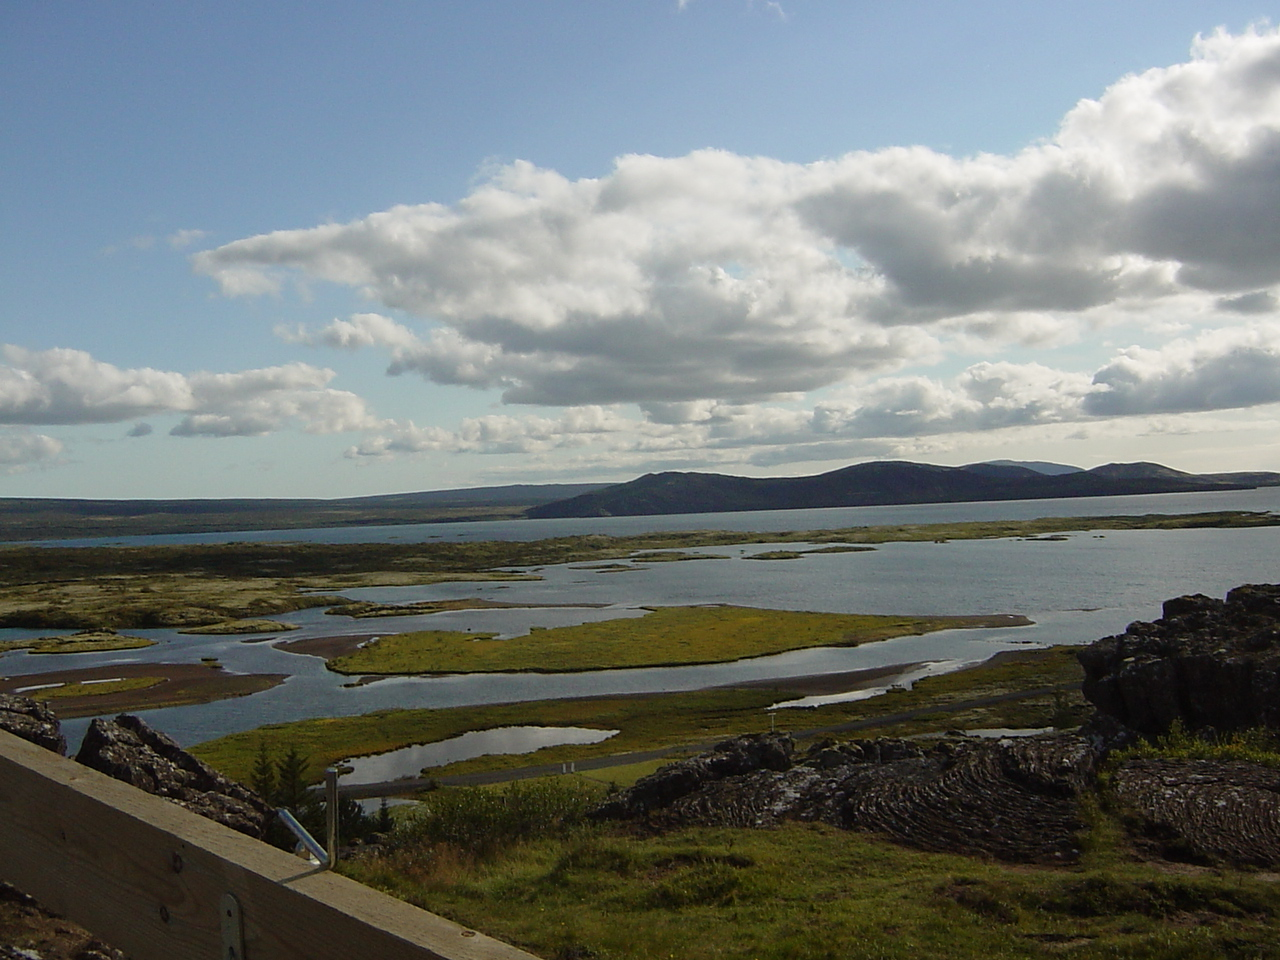 The view from the place where the Icelanders settled their first parliament (way back when..)...